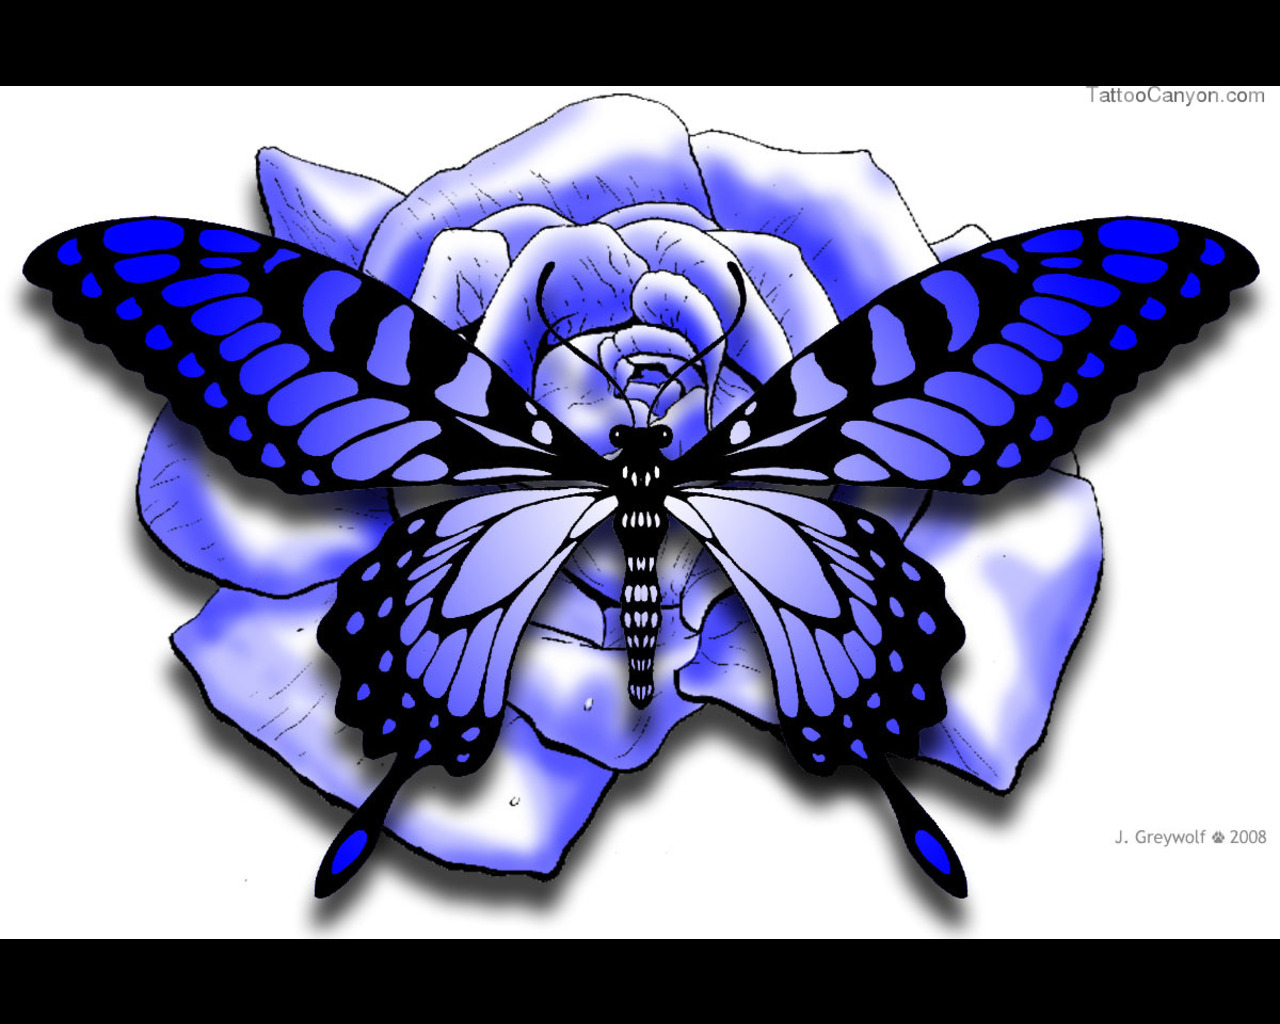 Drawn red rose branch Purple Butterfly Designs Tattoo Rose